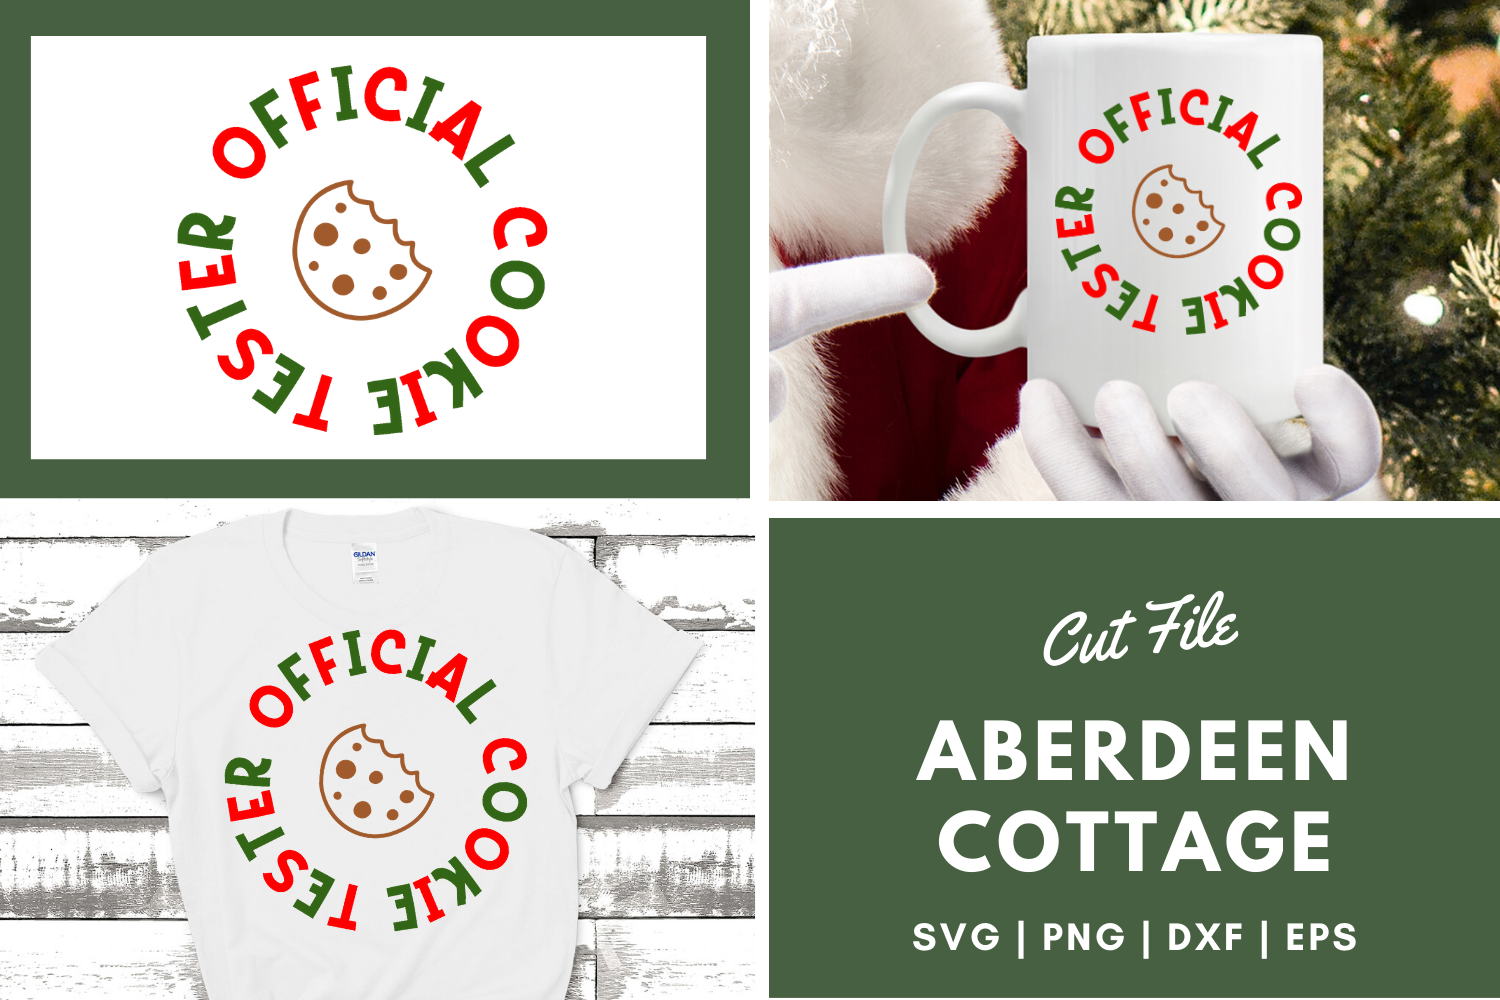 Download Free Official Cookie Tester Svg Png Dxf Eps Graphic By for Cricut Explore, Silhouette and other cutting machines.